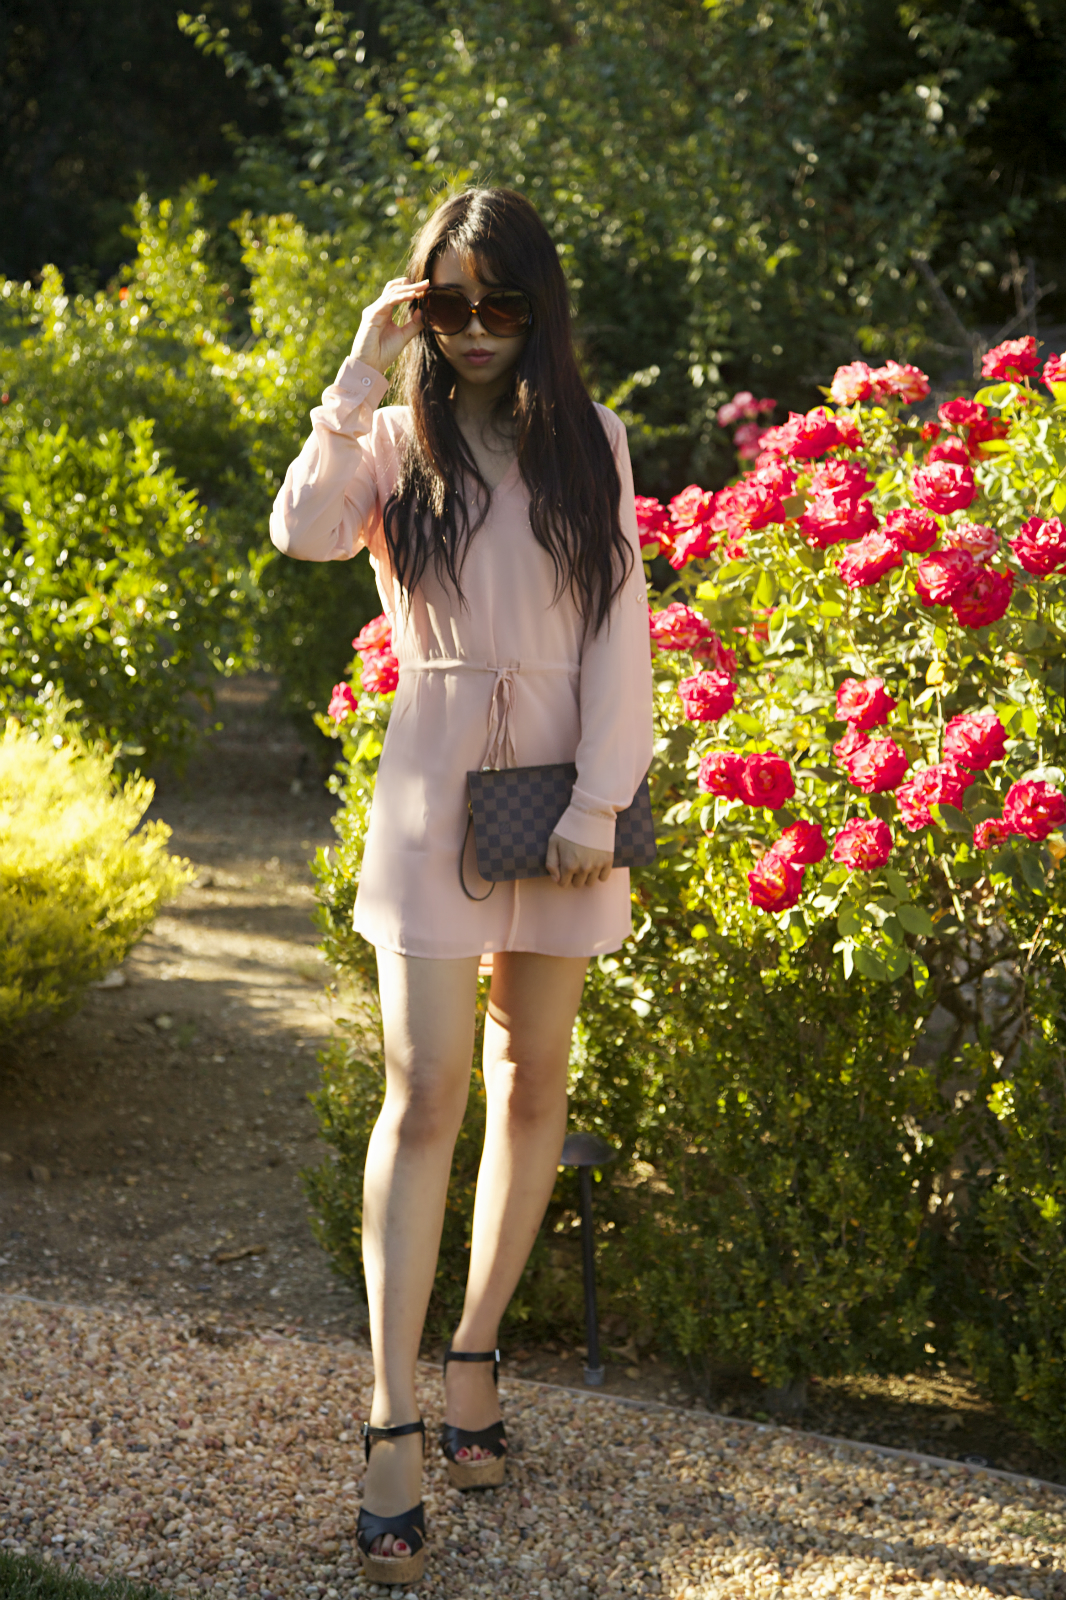 ally-gong-fashion-blogger-los-angeles-asian-girl-style-korean-model